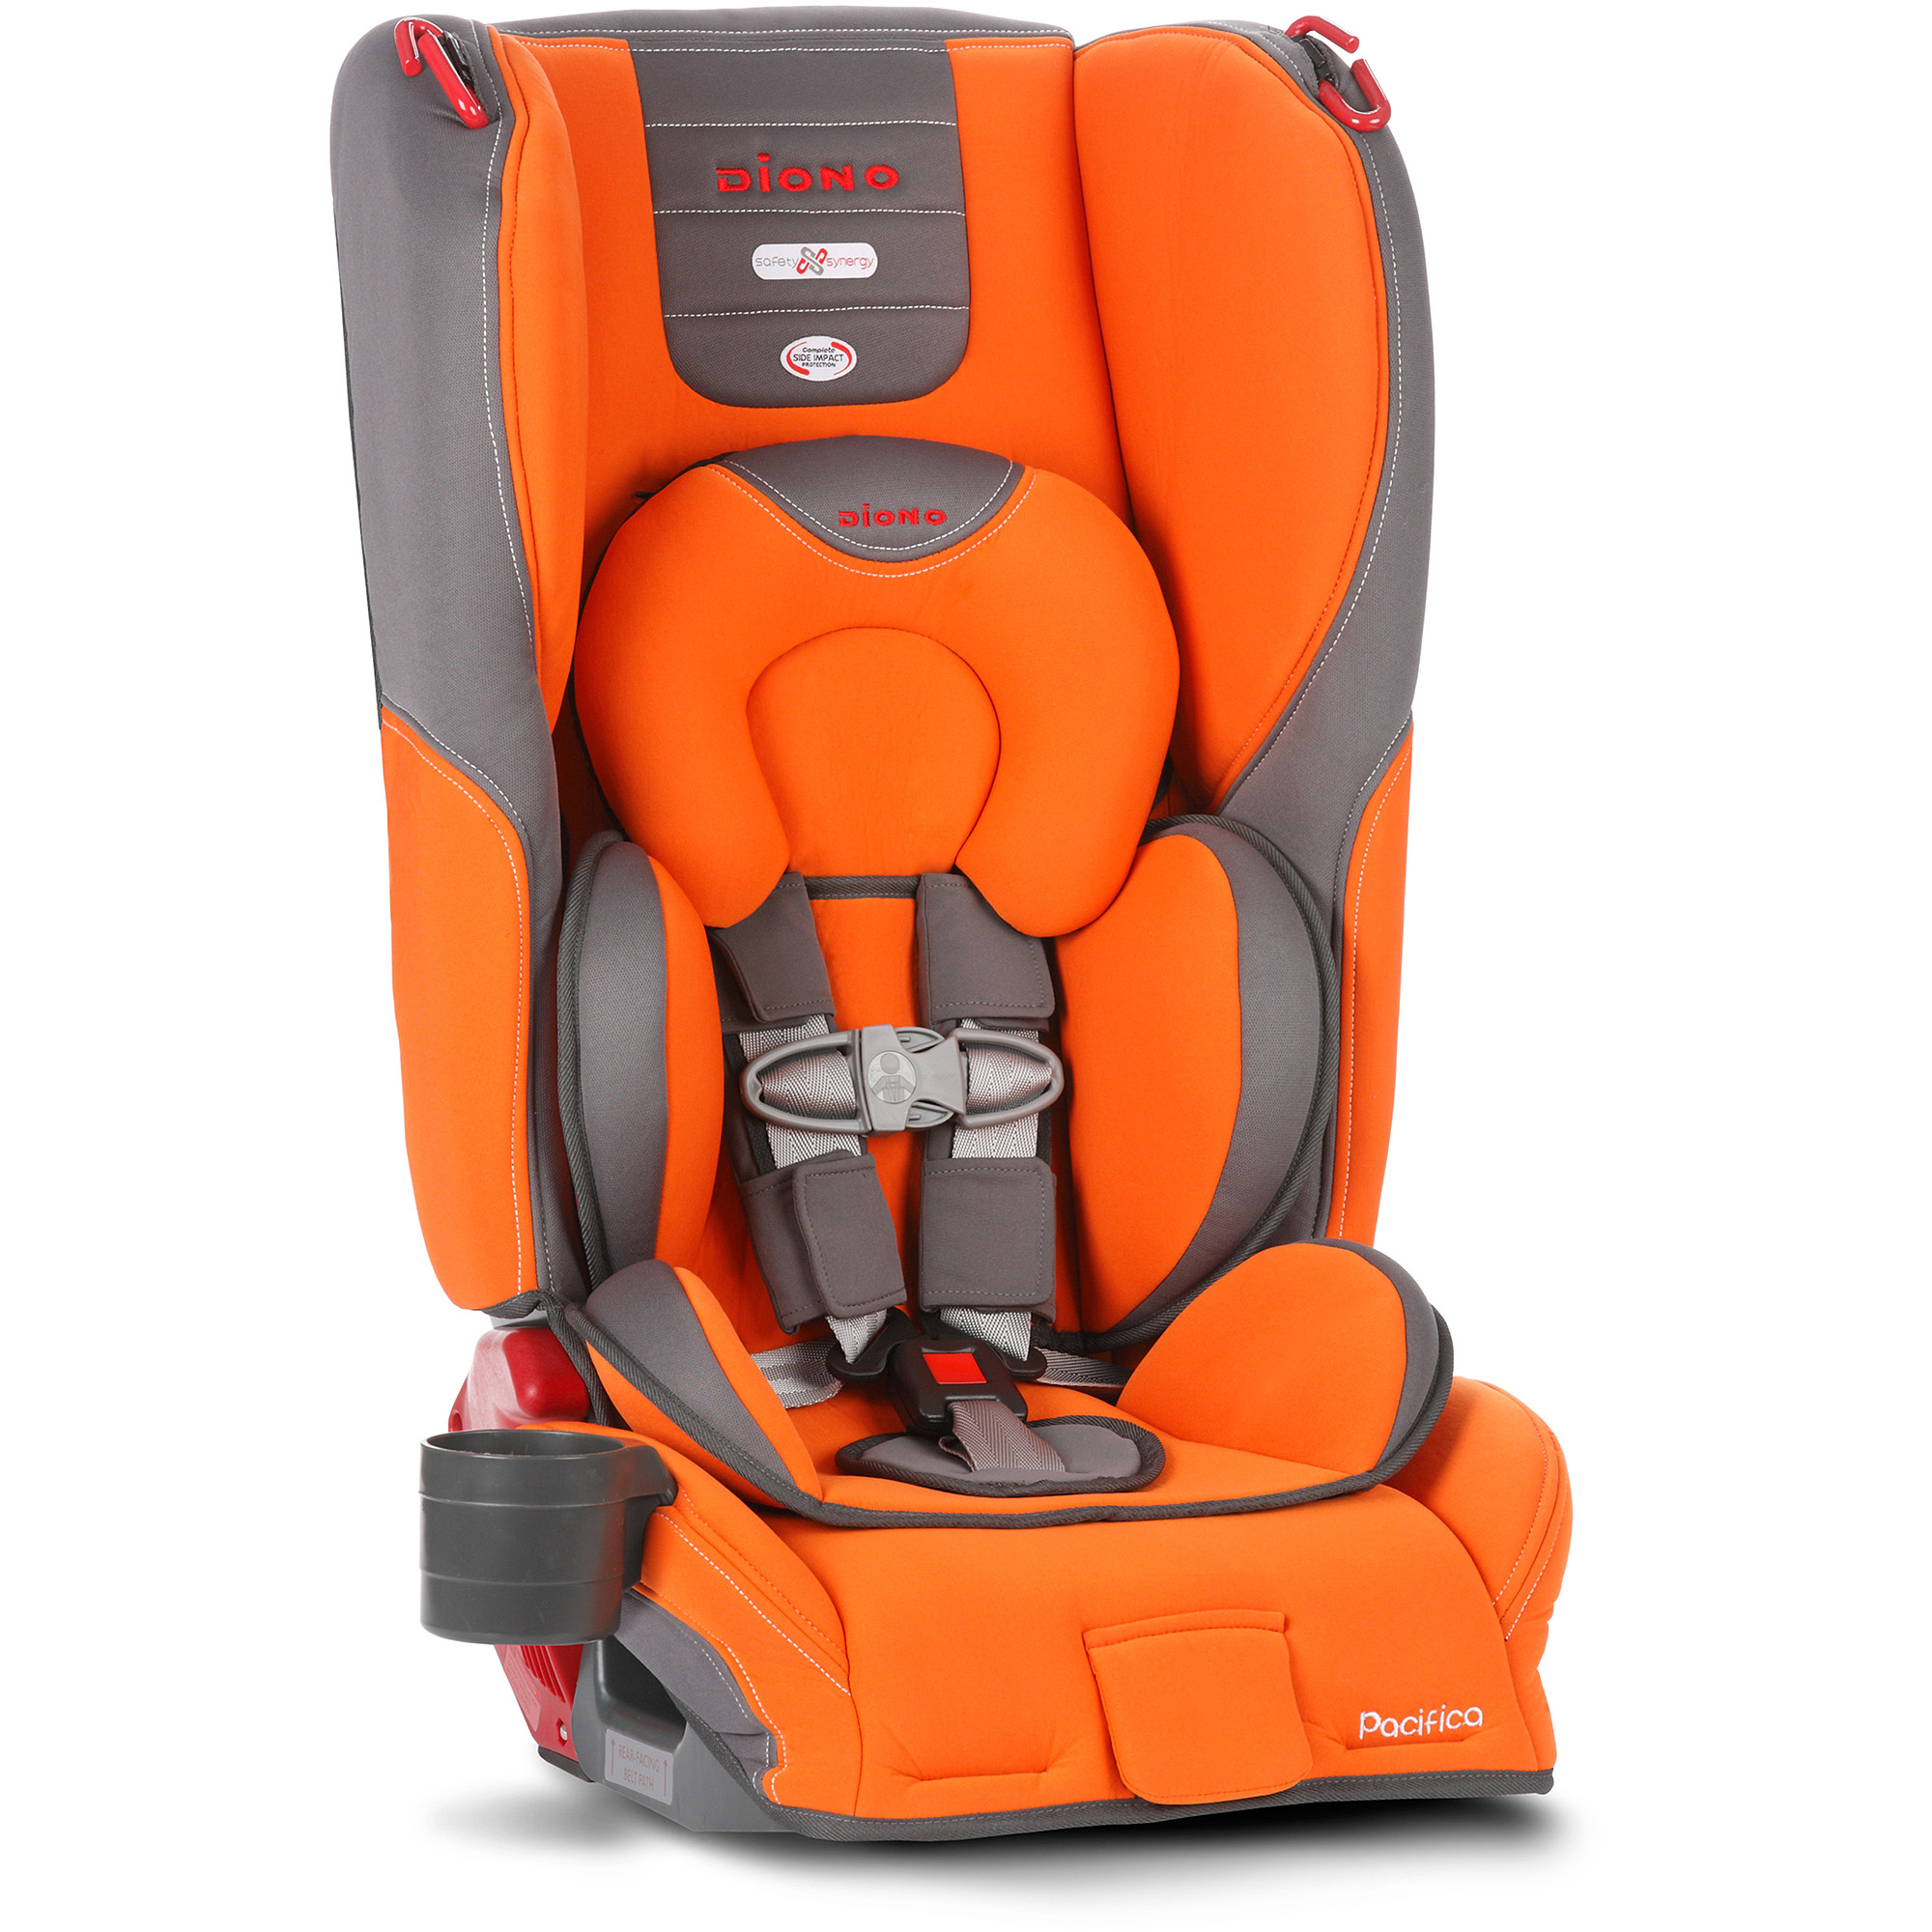 Diono Pacifica Convertible Car Seat plus Booster with Body Pillow